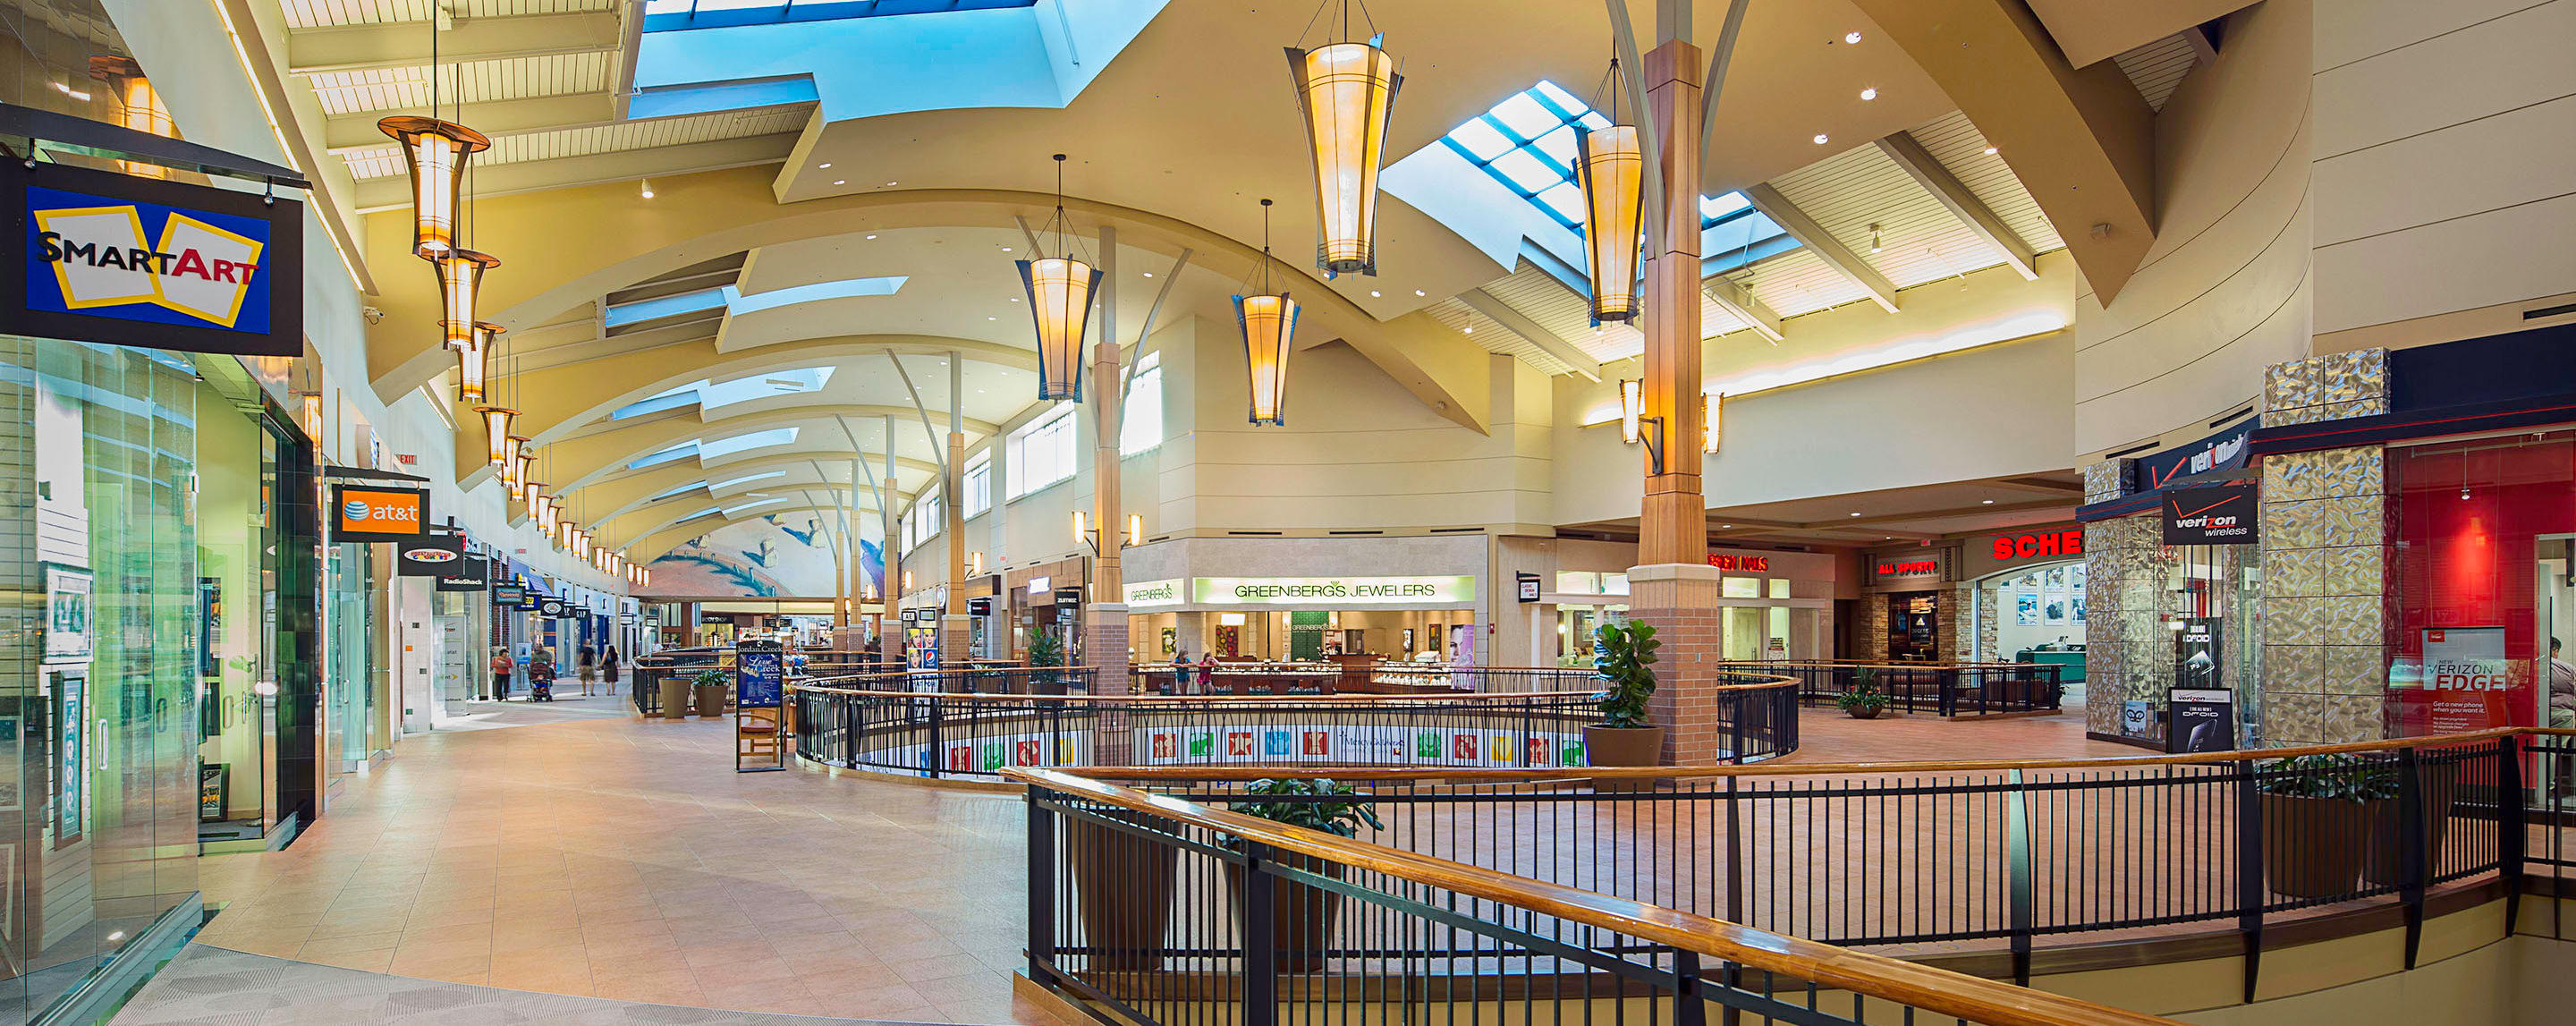 Jordan Creek Town Center, store listings, hours, hotels, comment forum and more (West Des Moines, IA).